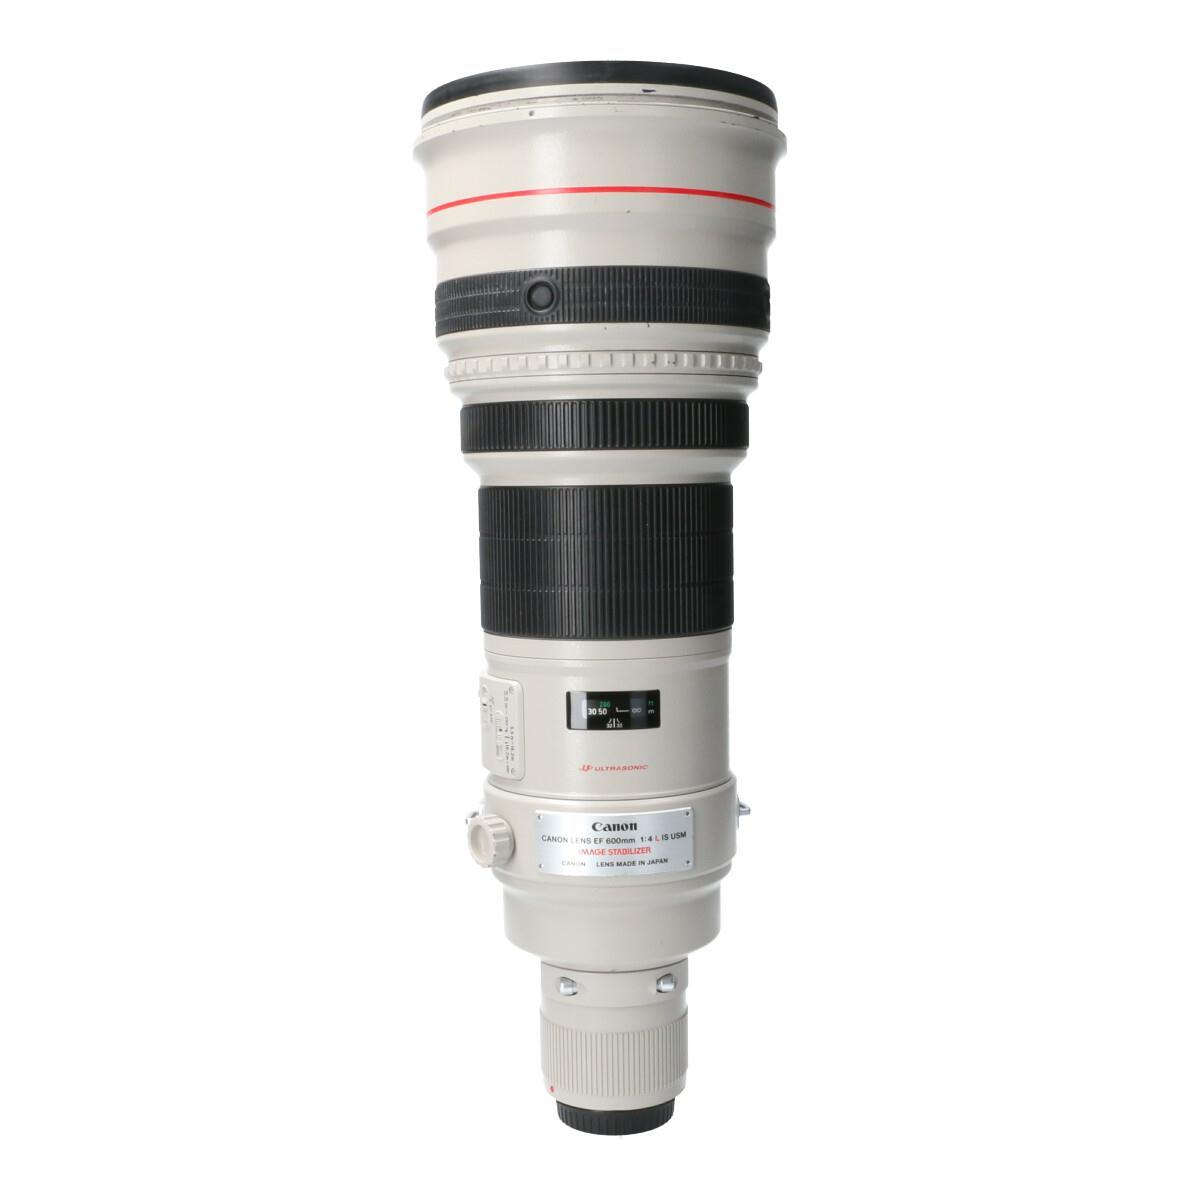 CANON EF600mm F4L IS USM【中古】